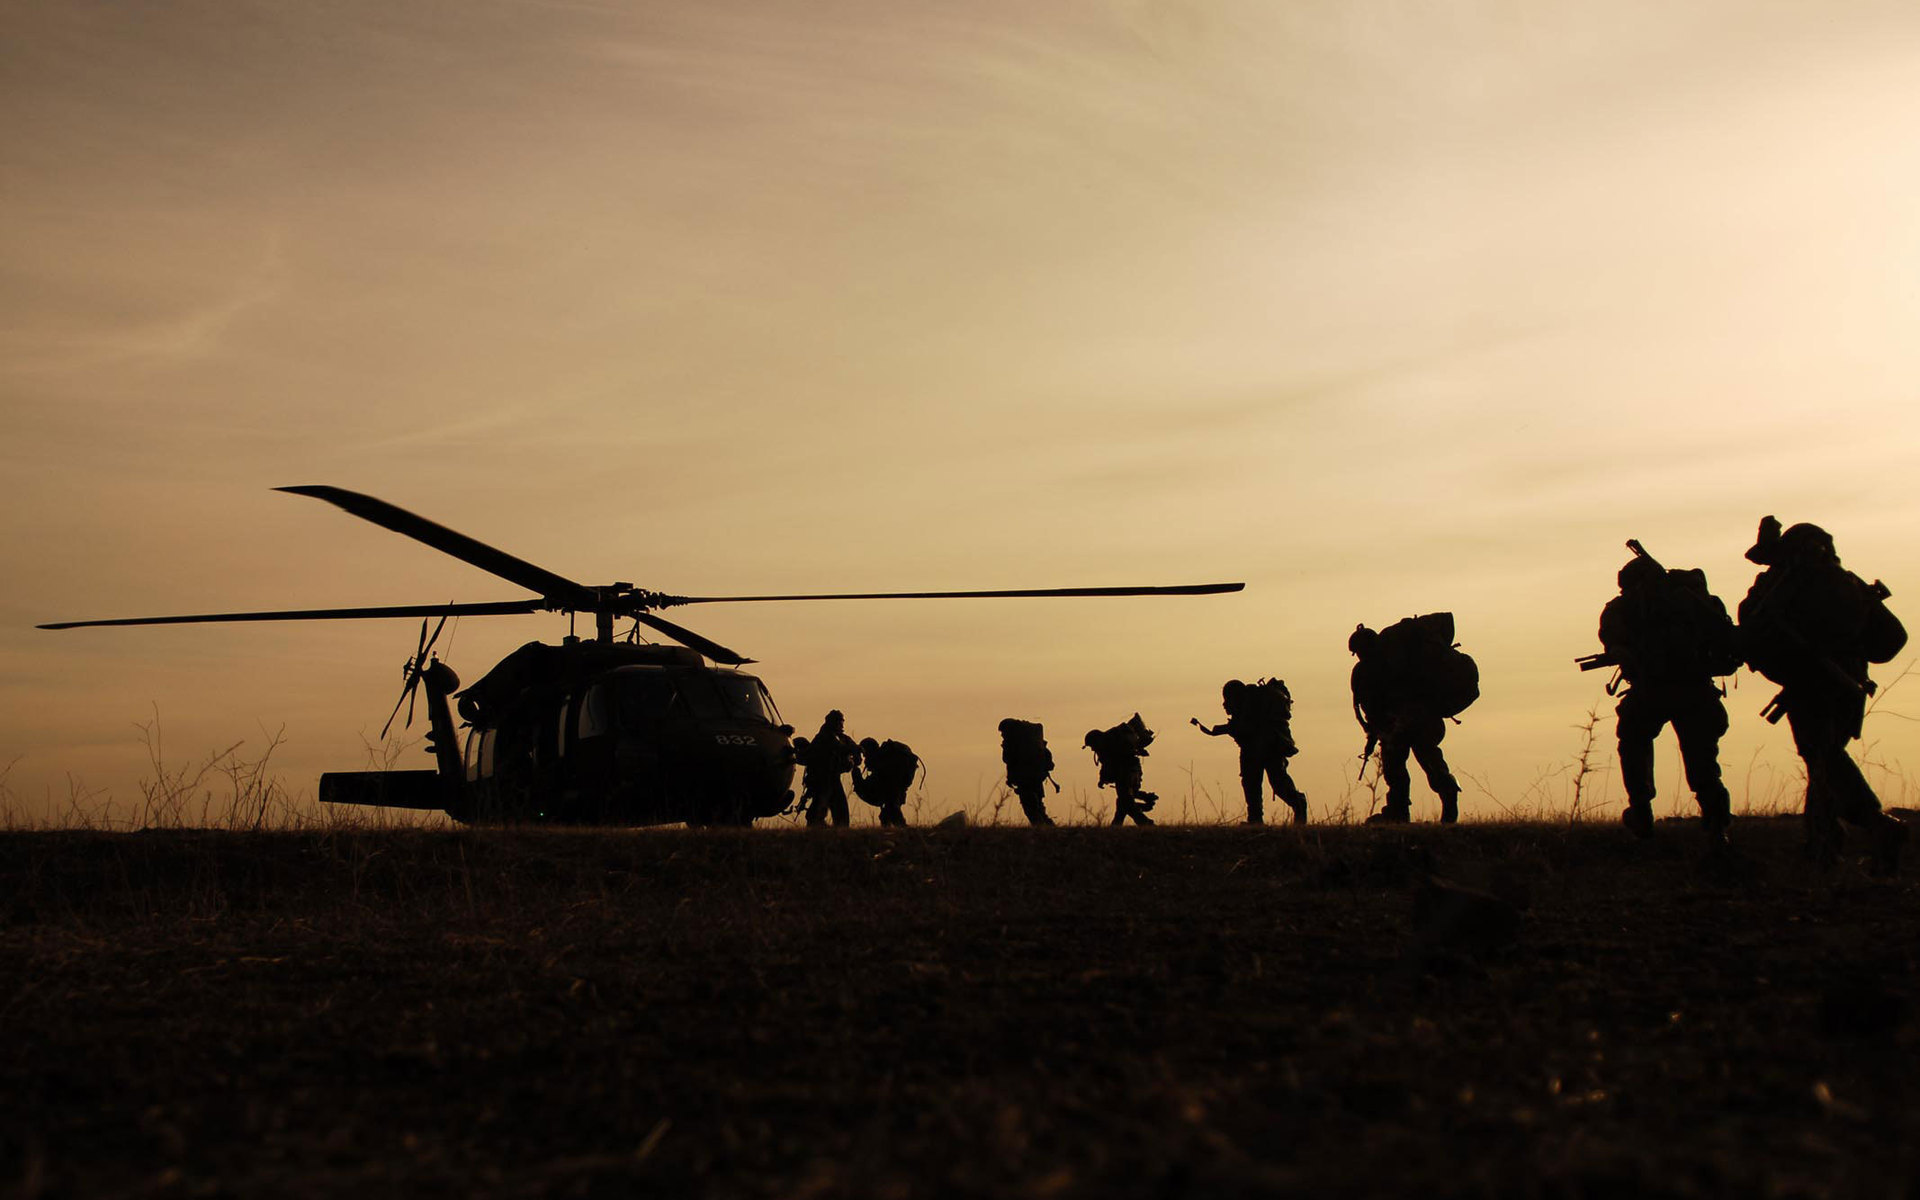 Us Army Helicopter and Soldiers